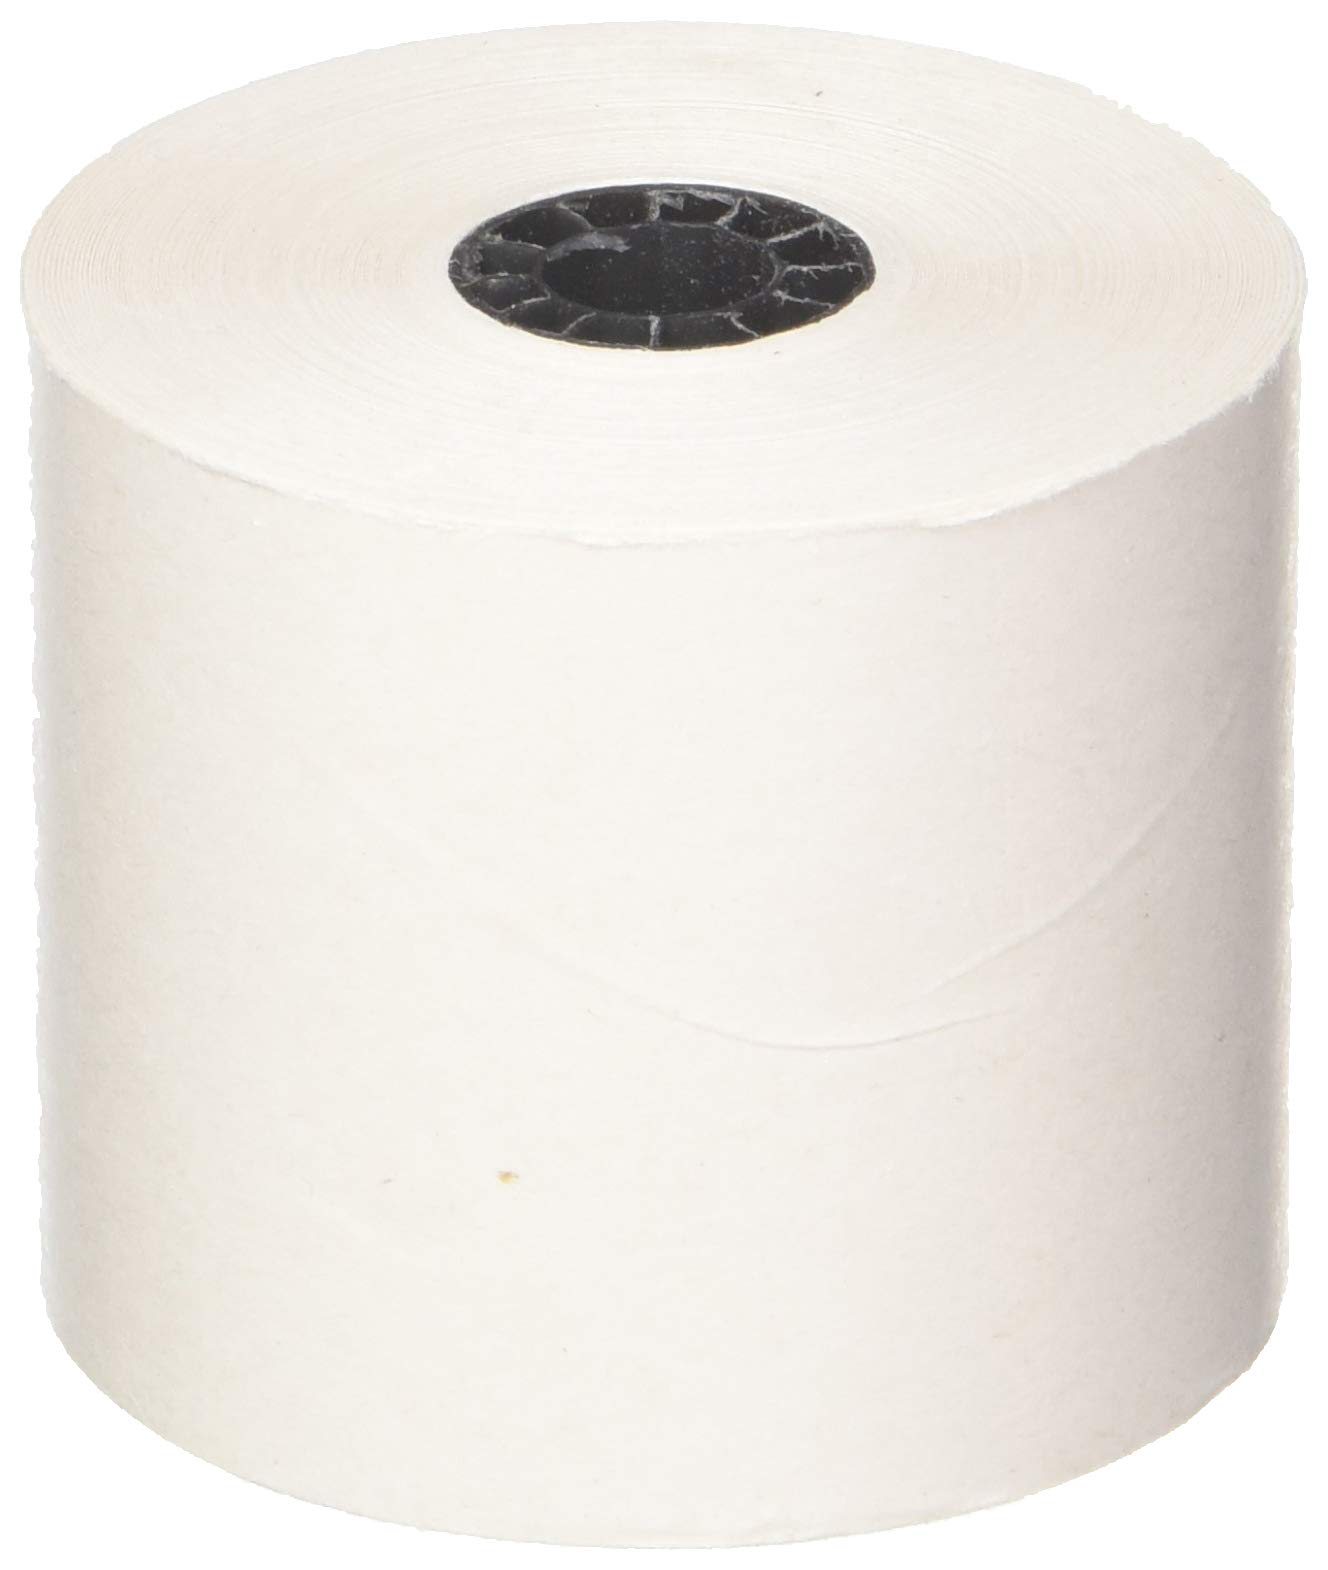 Office Depot Brand Thermal Preprinted Paper Rolls, 2 1/4'' x 85', White, Pack Of 12